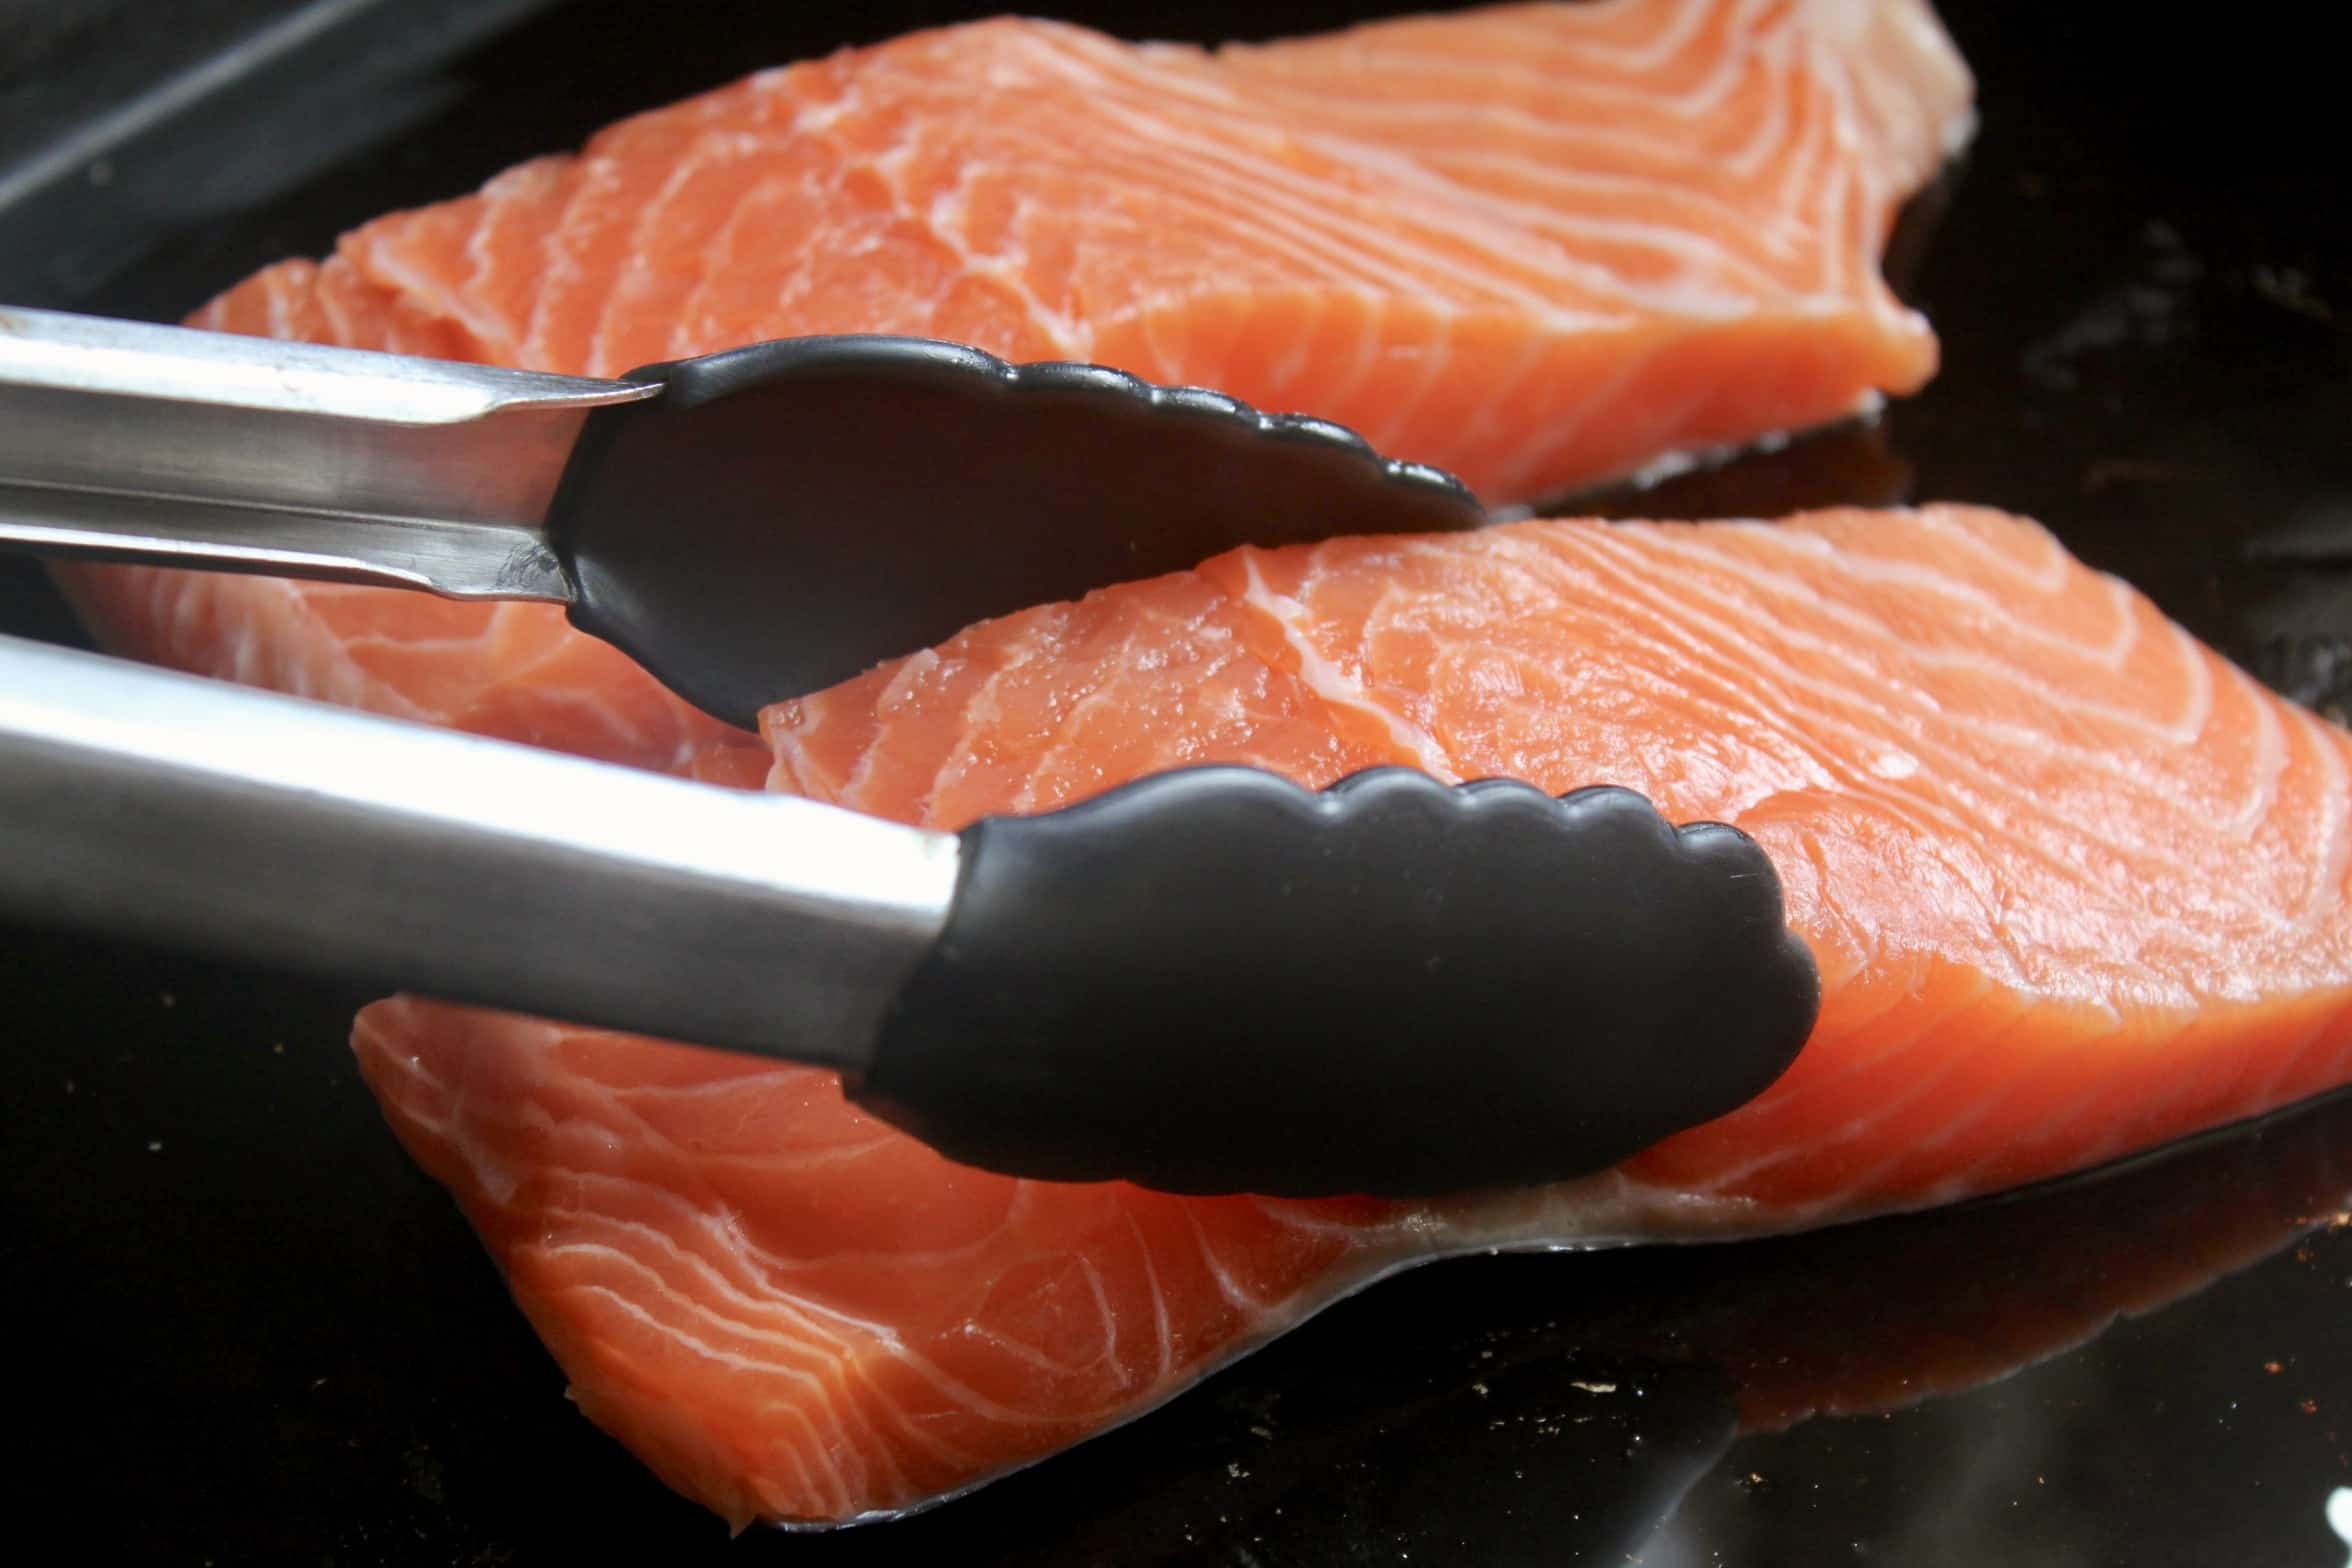 tongs placing salmon on a tray